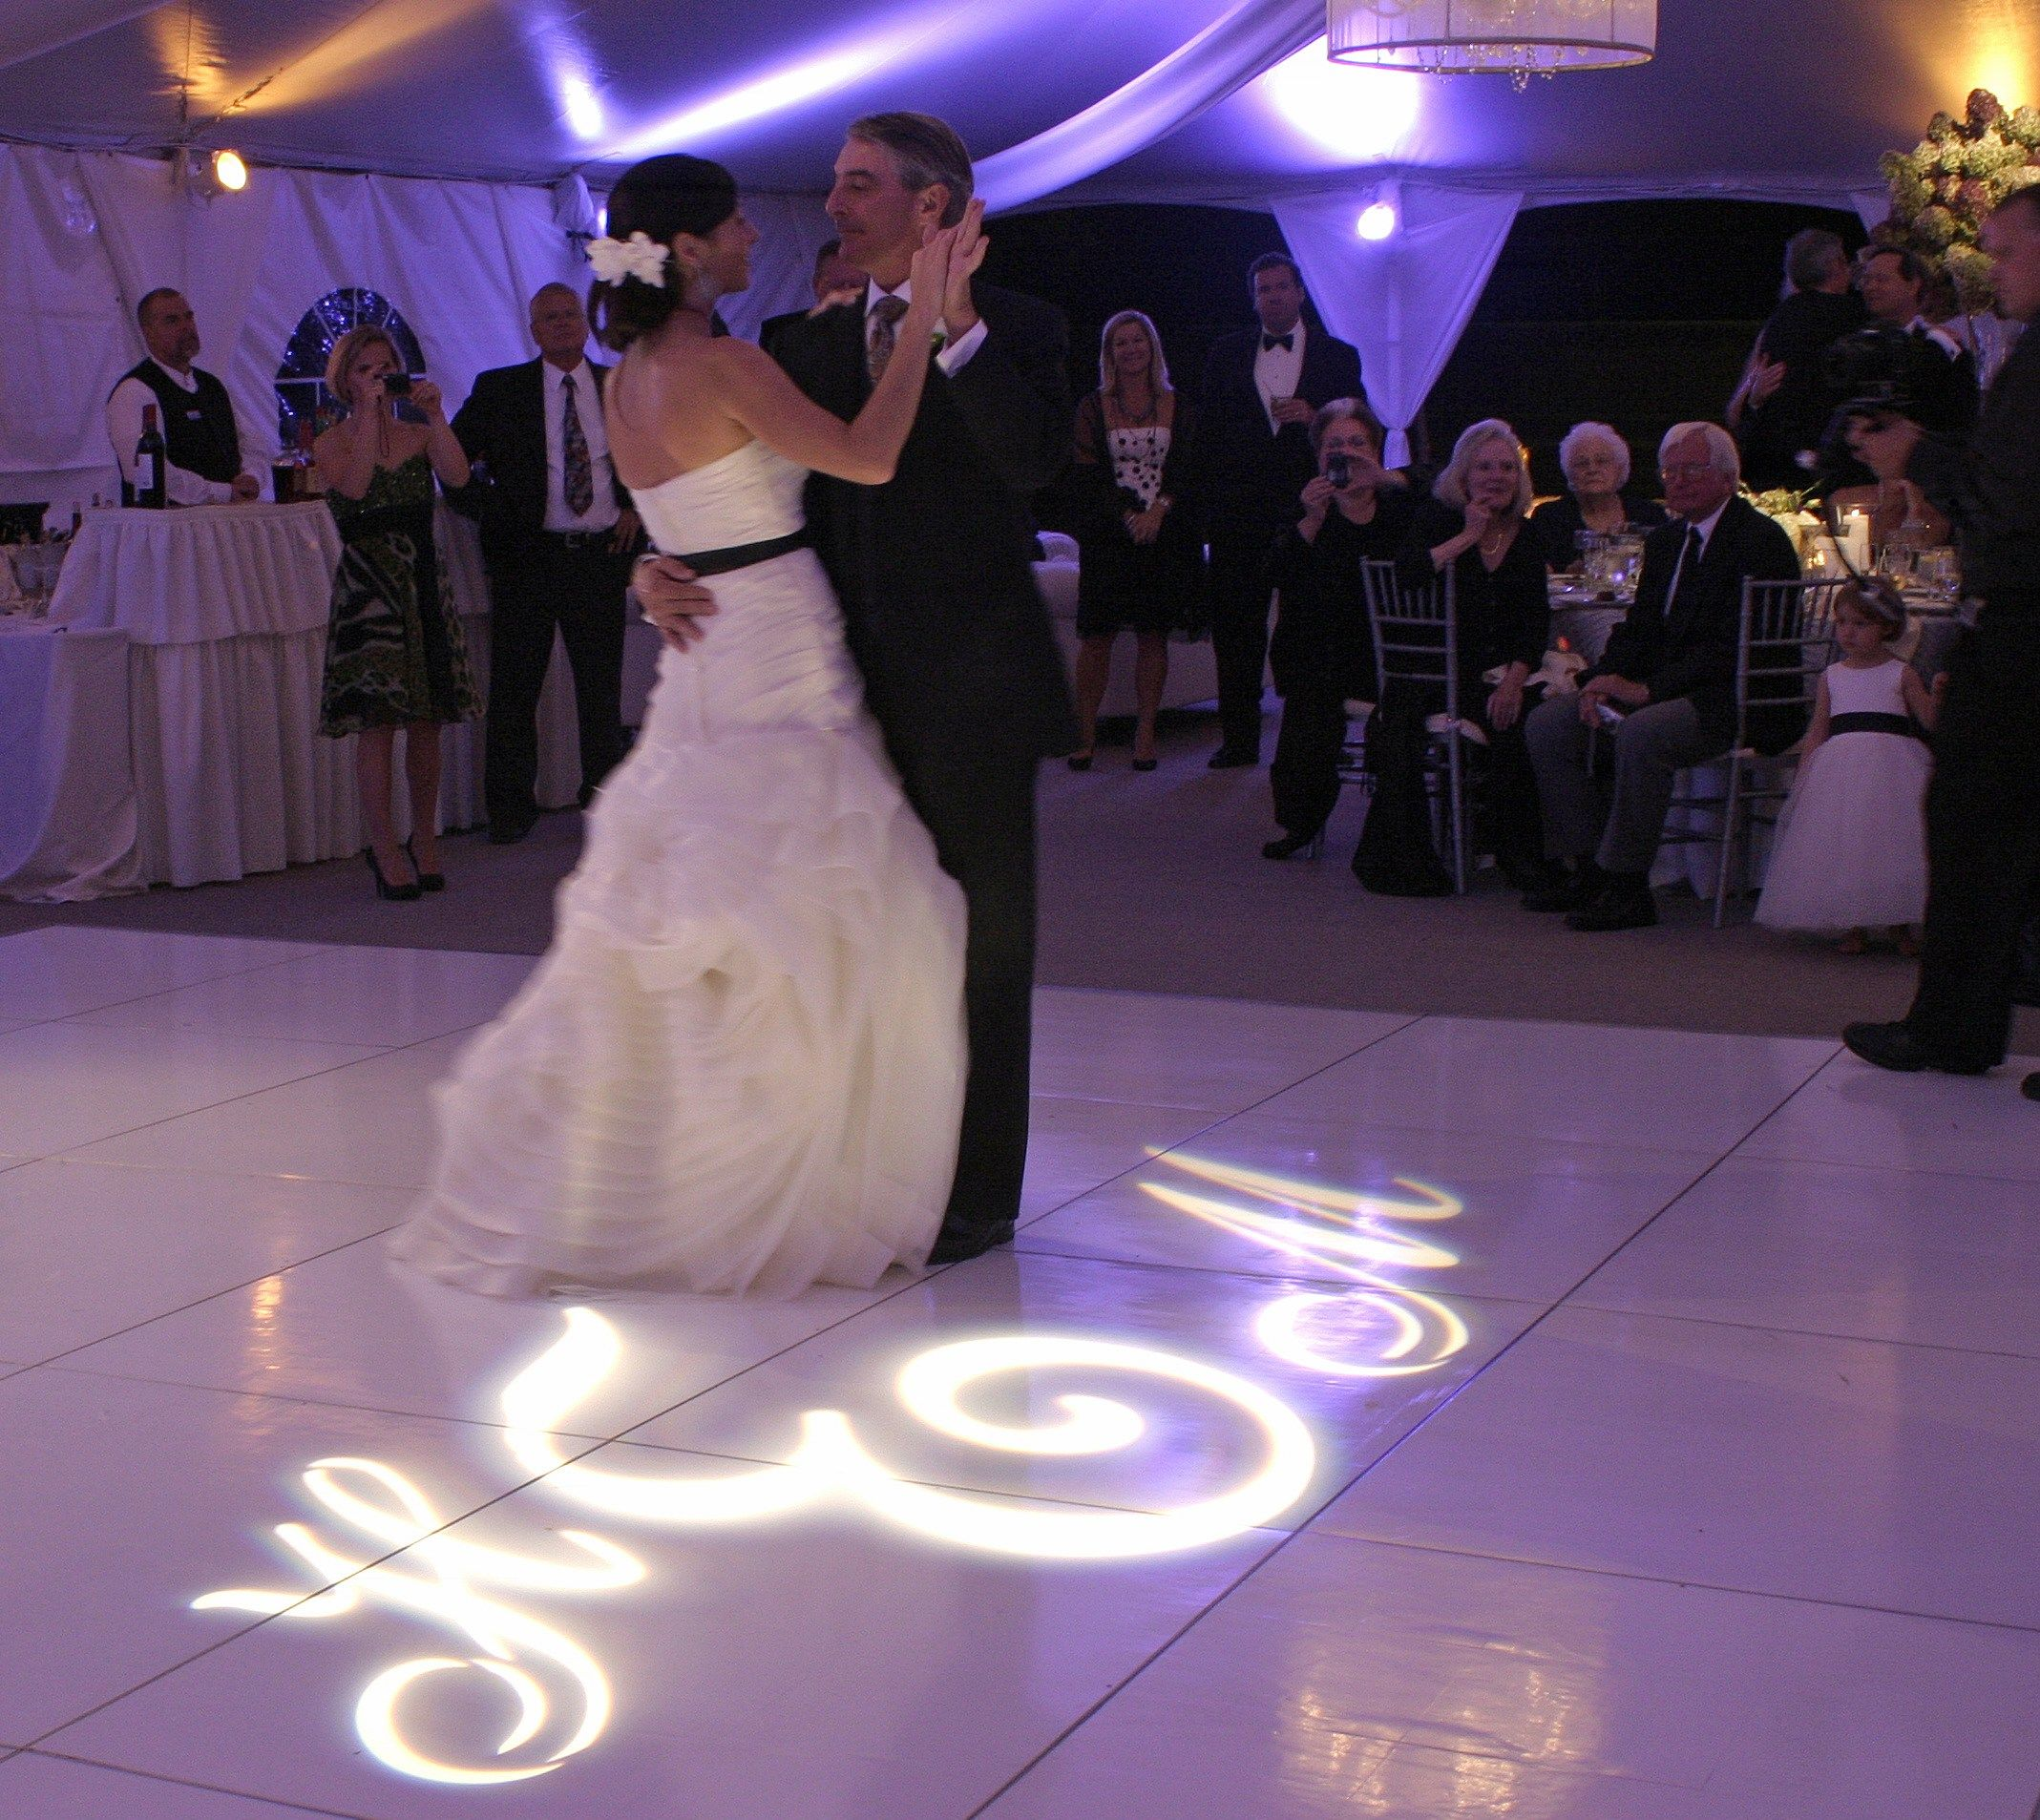 Swirling Vera Wang Silk And A Swirly Font Gobo Take The Dance Floor At This Biltmore